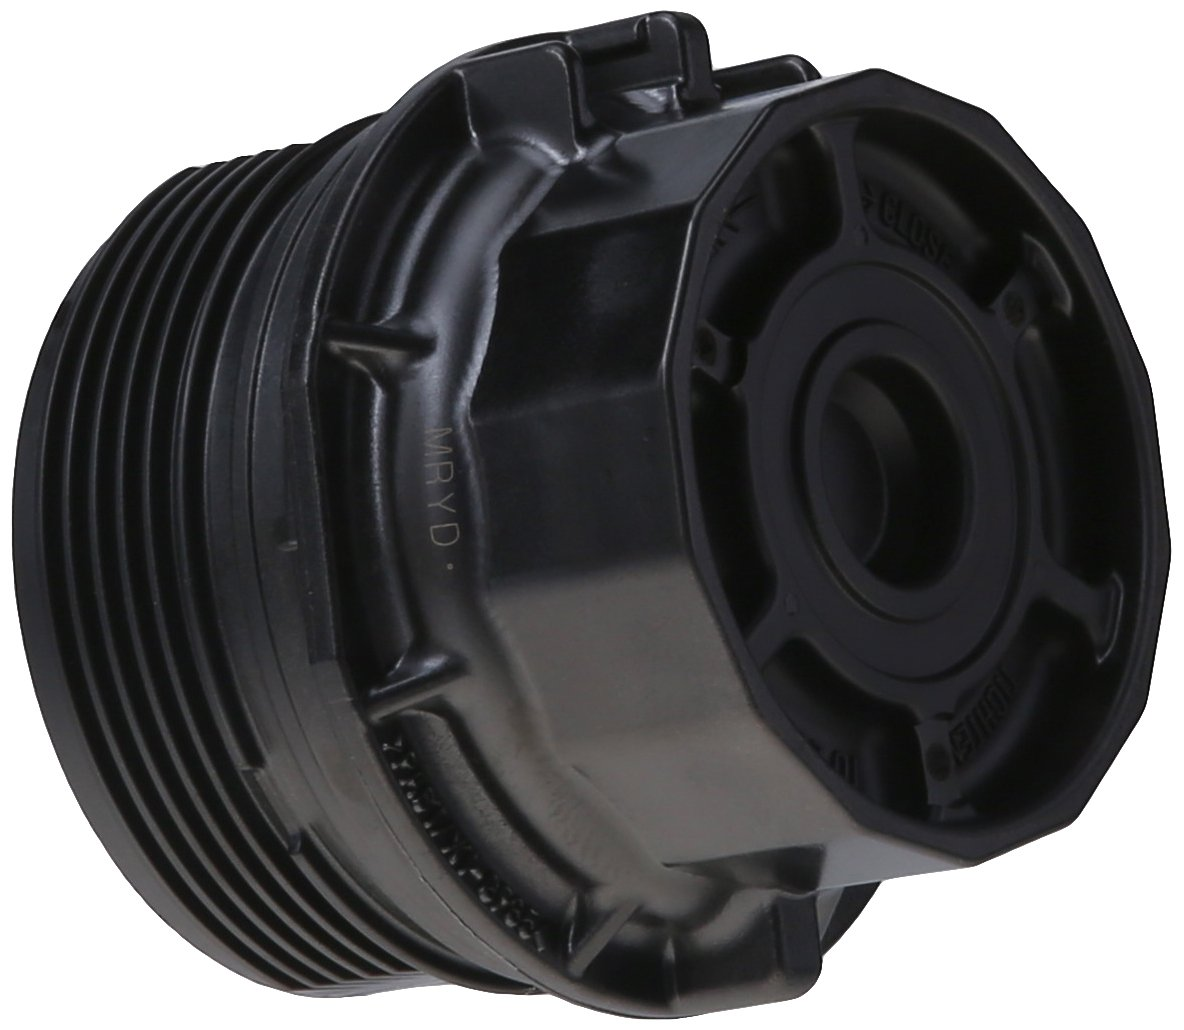 2006 Ford Fuel Filter Cap Wiring Diagram Libraries Location On Toyota Camry Amazon Com Oil Breather U0026 Caps Replacement Parts Automotivegenuine 15620 37010